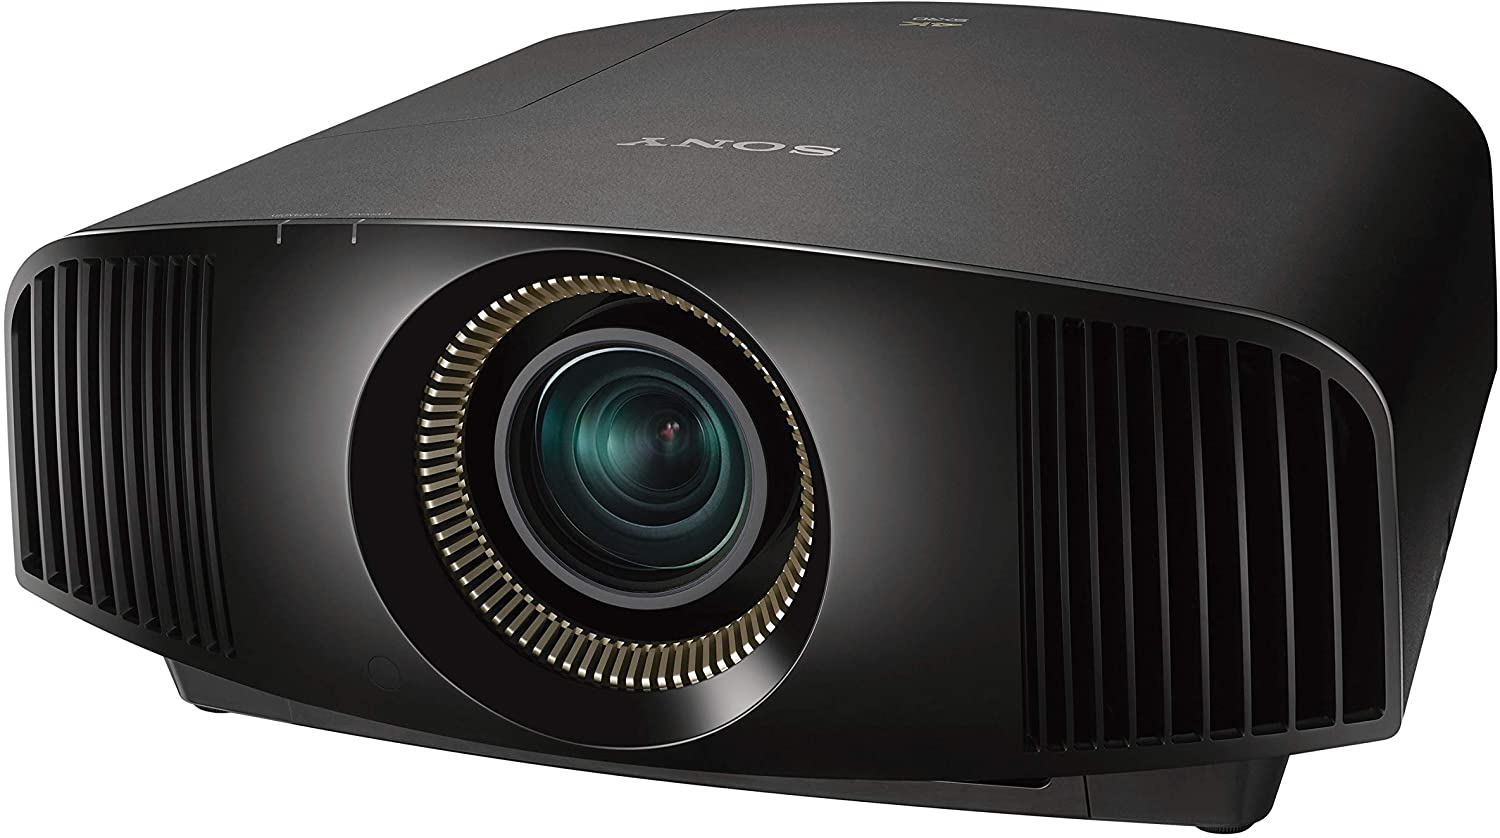 Sony VPL-VW715ES 4K HDR Home Theater Projector, Black